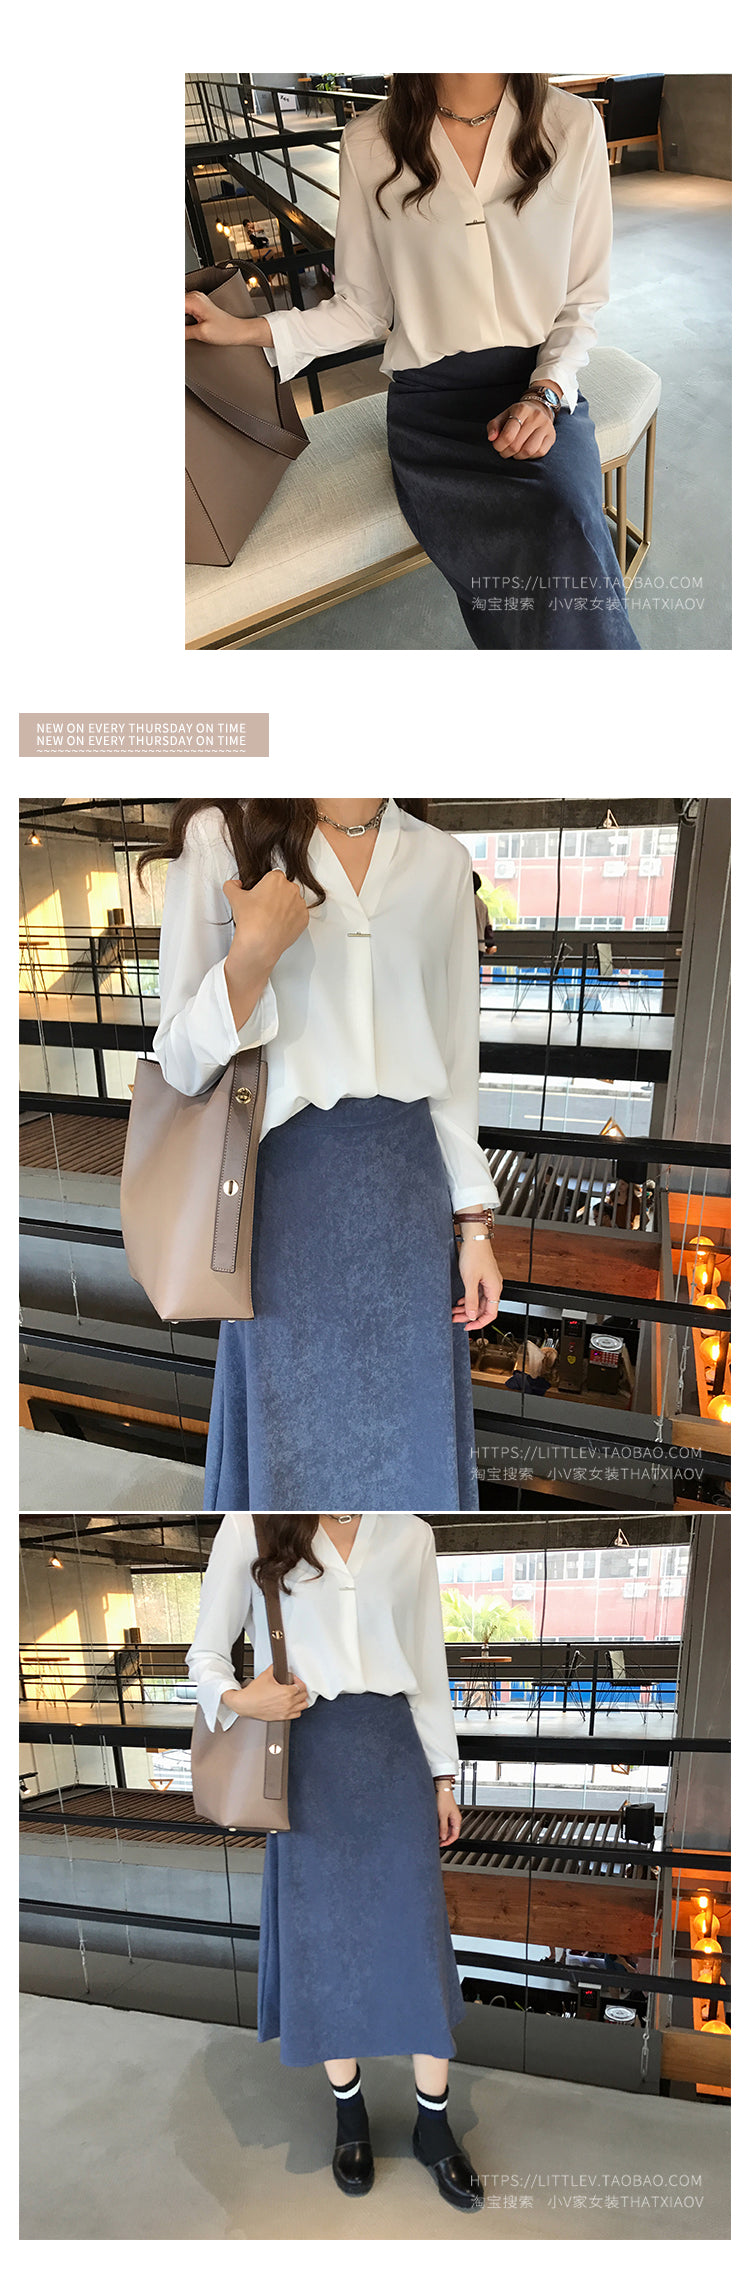 women chiffon blouse shirt long sleeve women shirts fashion womens tops and blouses 2019 3XL 4XL plus size women tops 1681 50